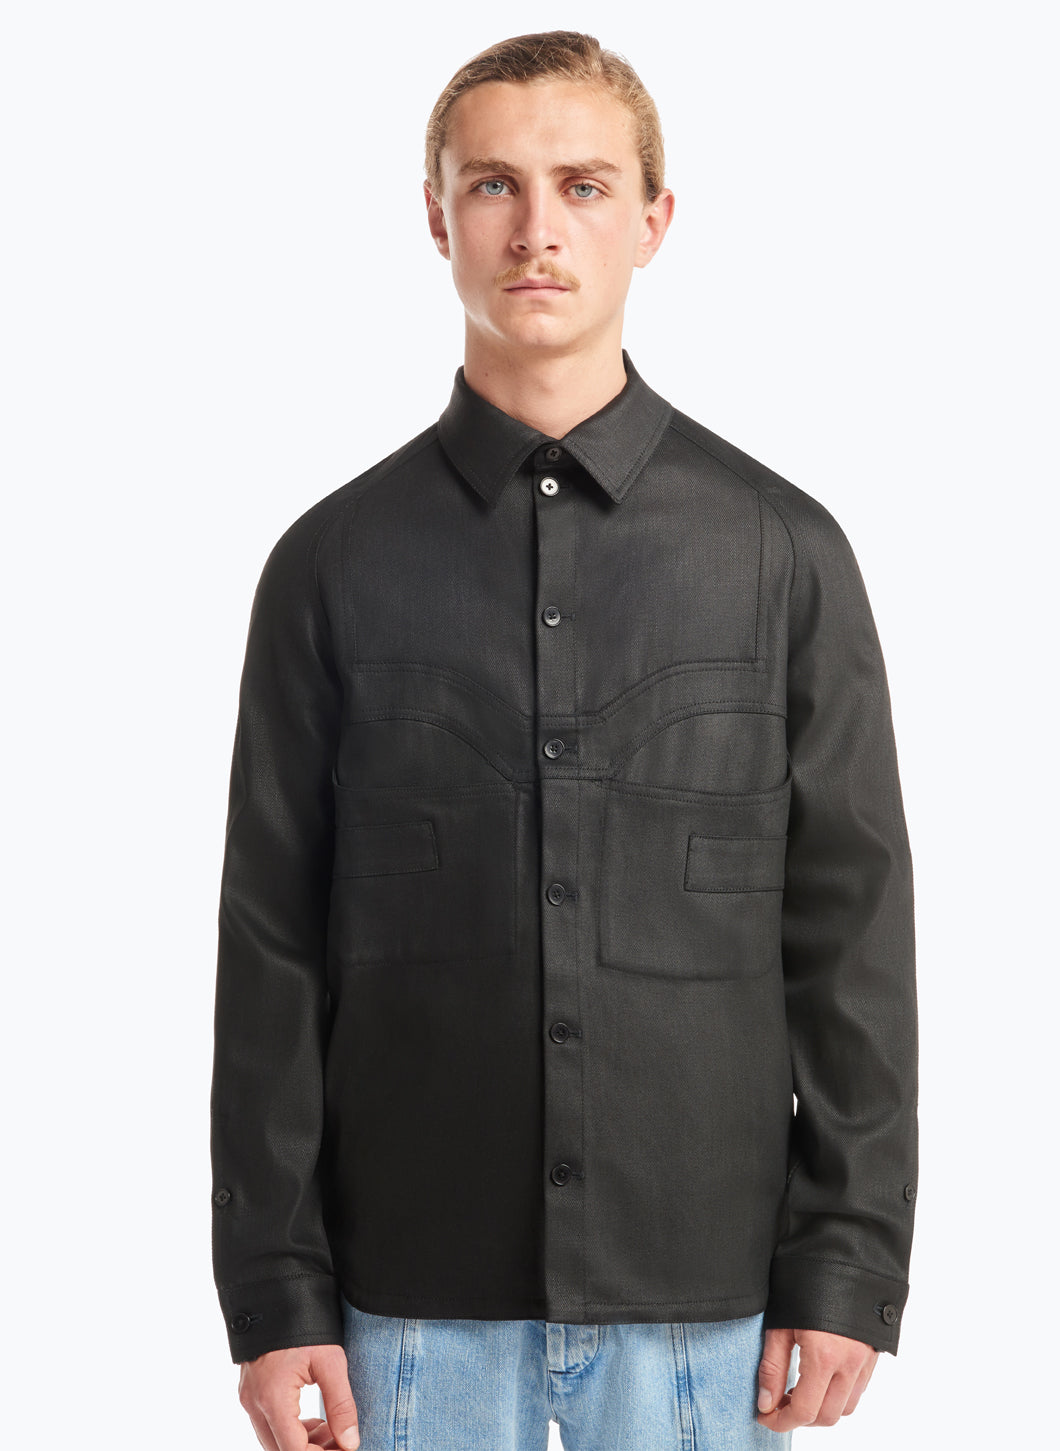 Overshirt with Graphic Cuts in Black Waxed Denim